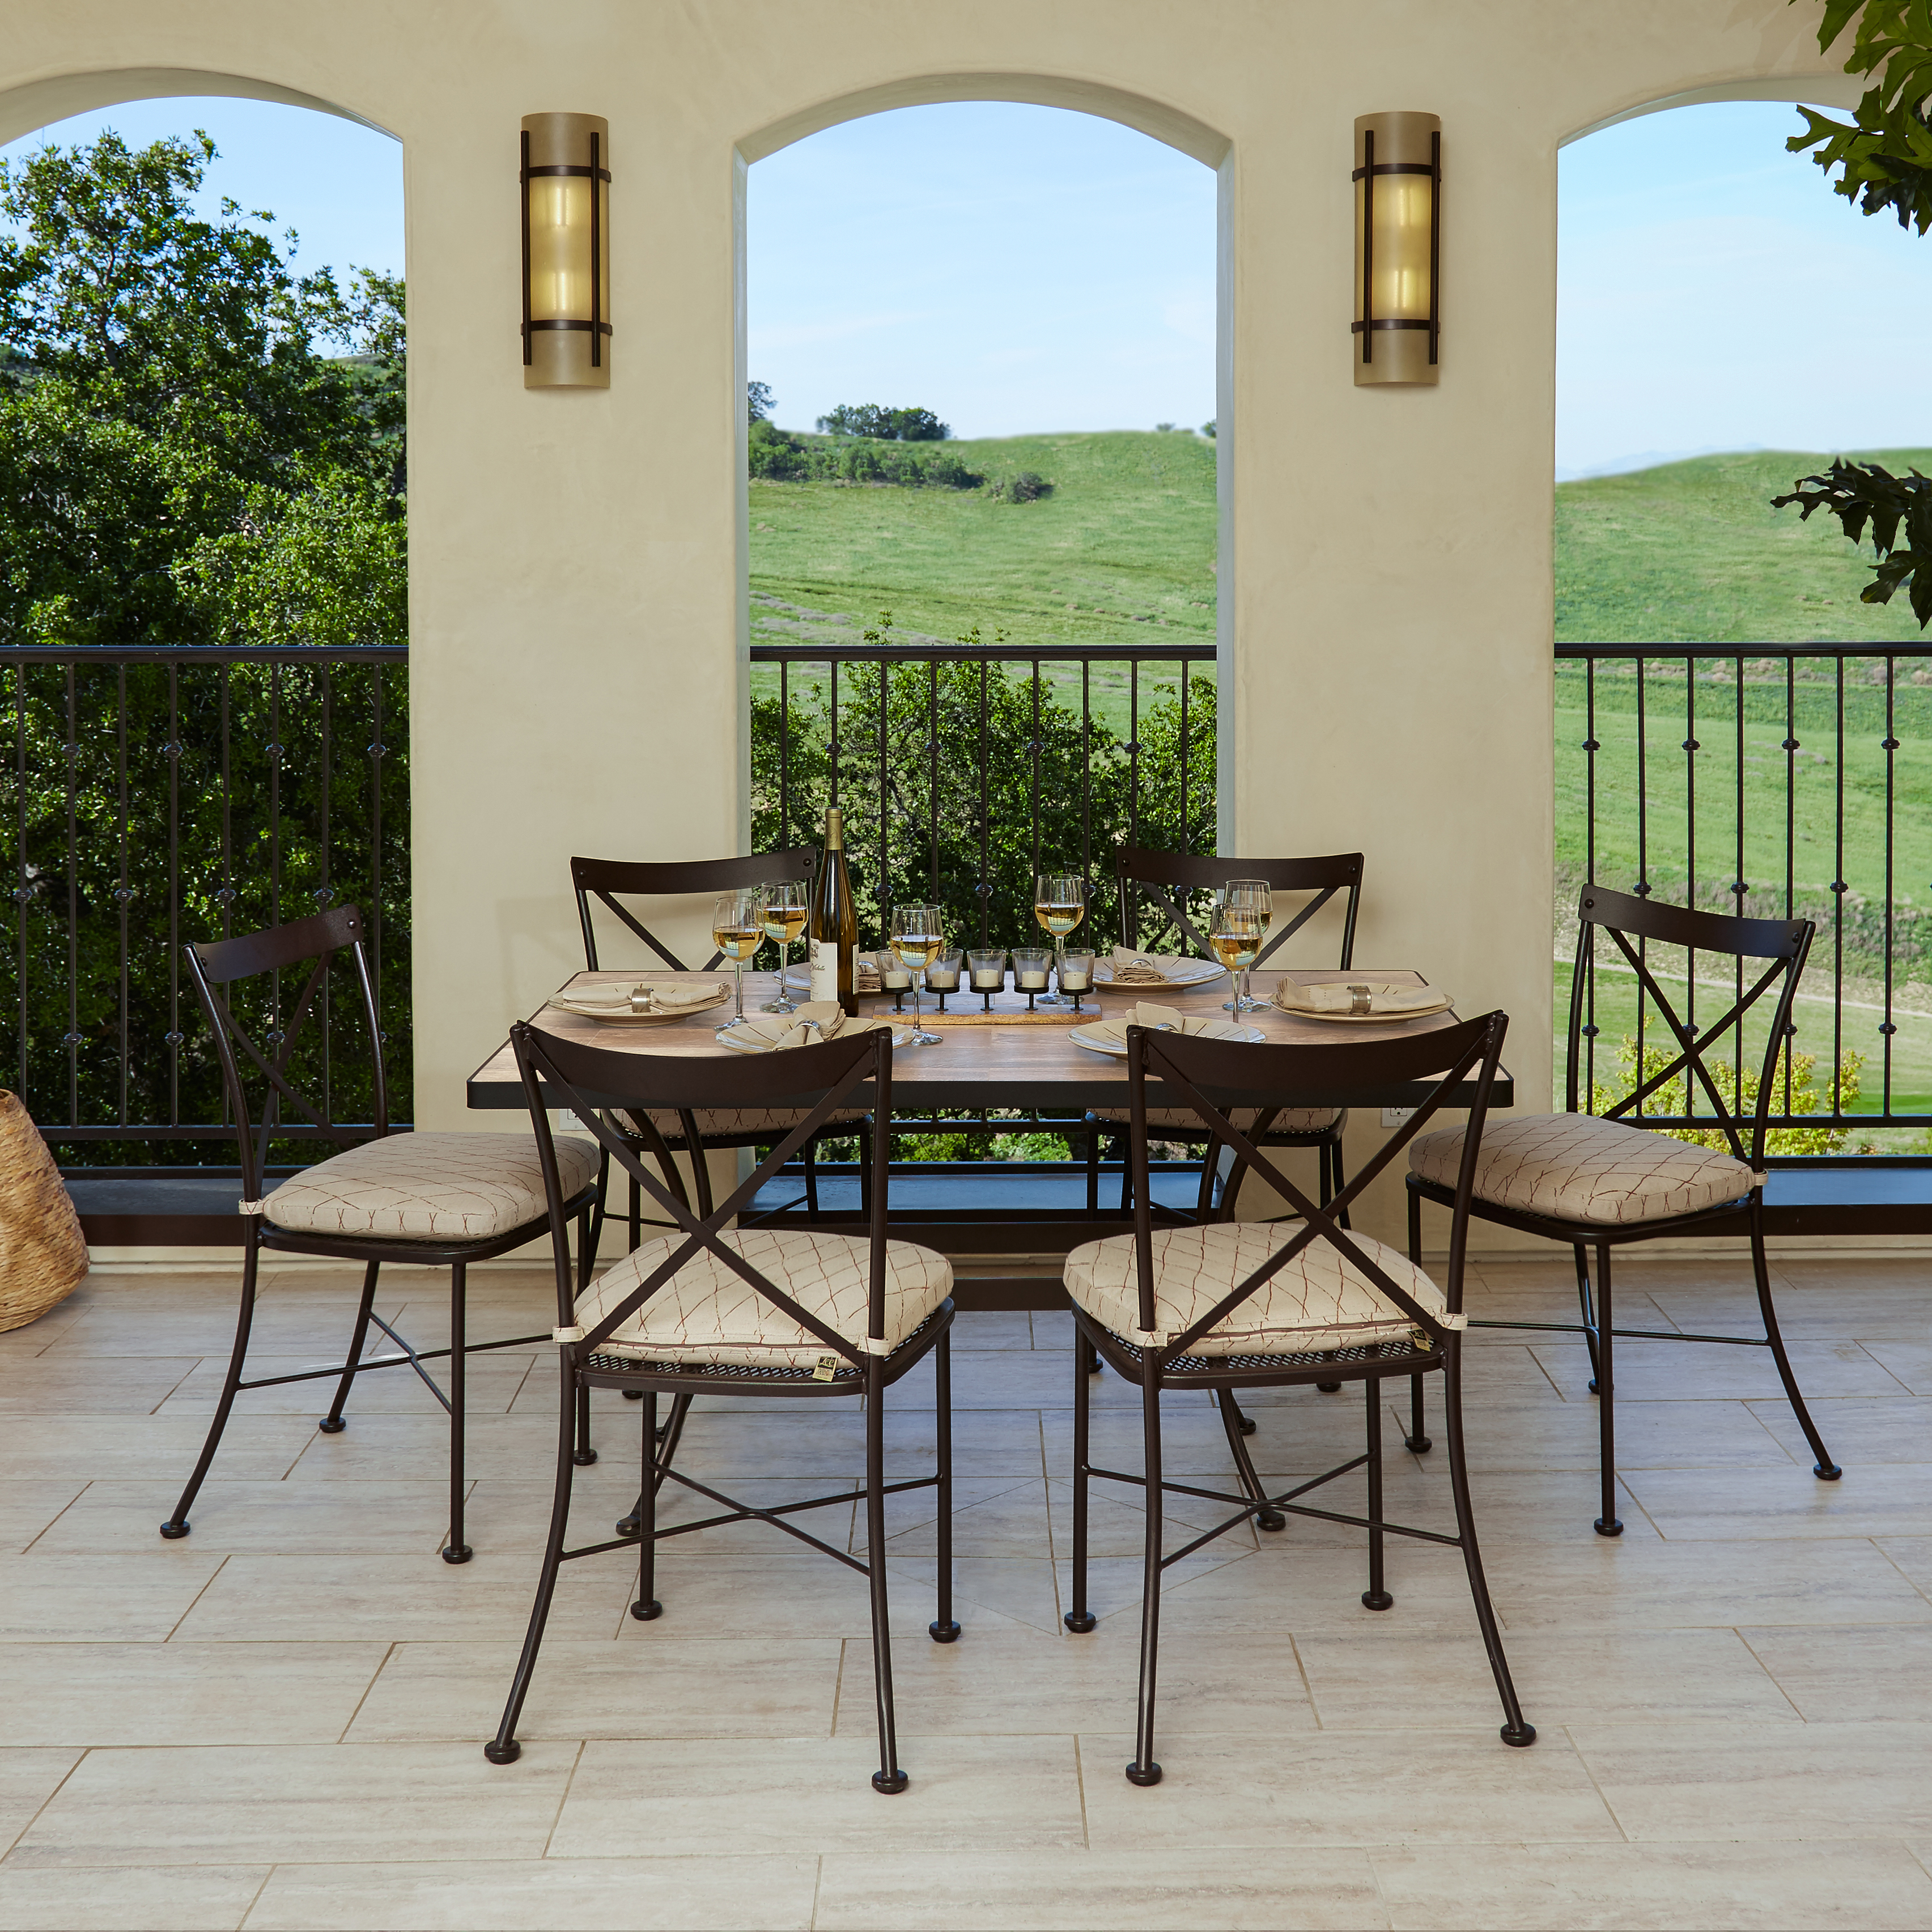 Astounding Ow Lee Patio Furniture Thatcher Pools And Spas Download Free Architecture Designs Viewormadebymaigaardcom